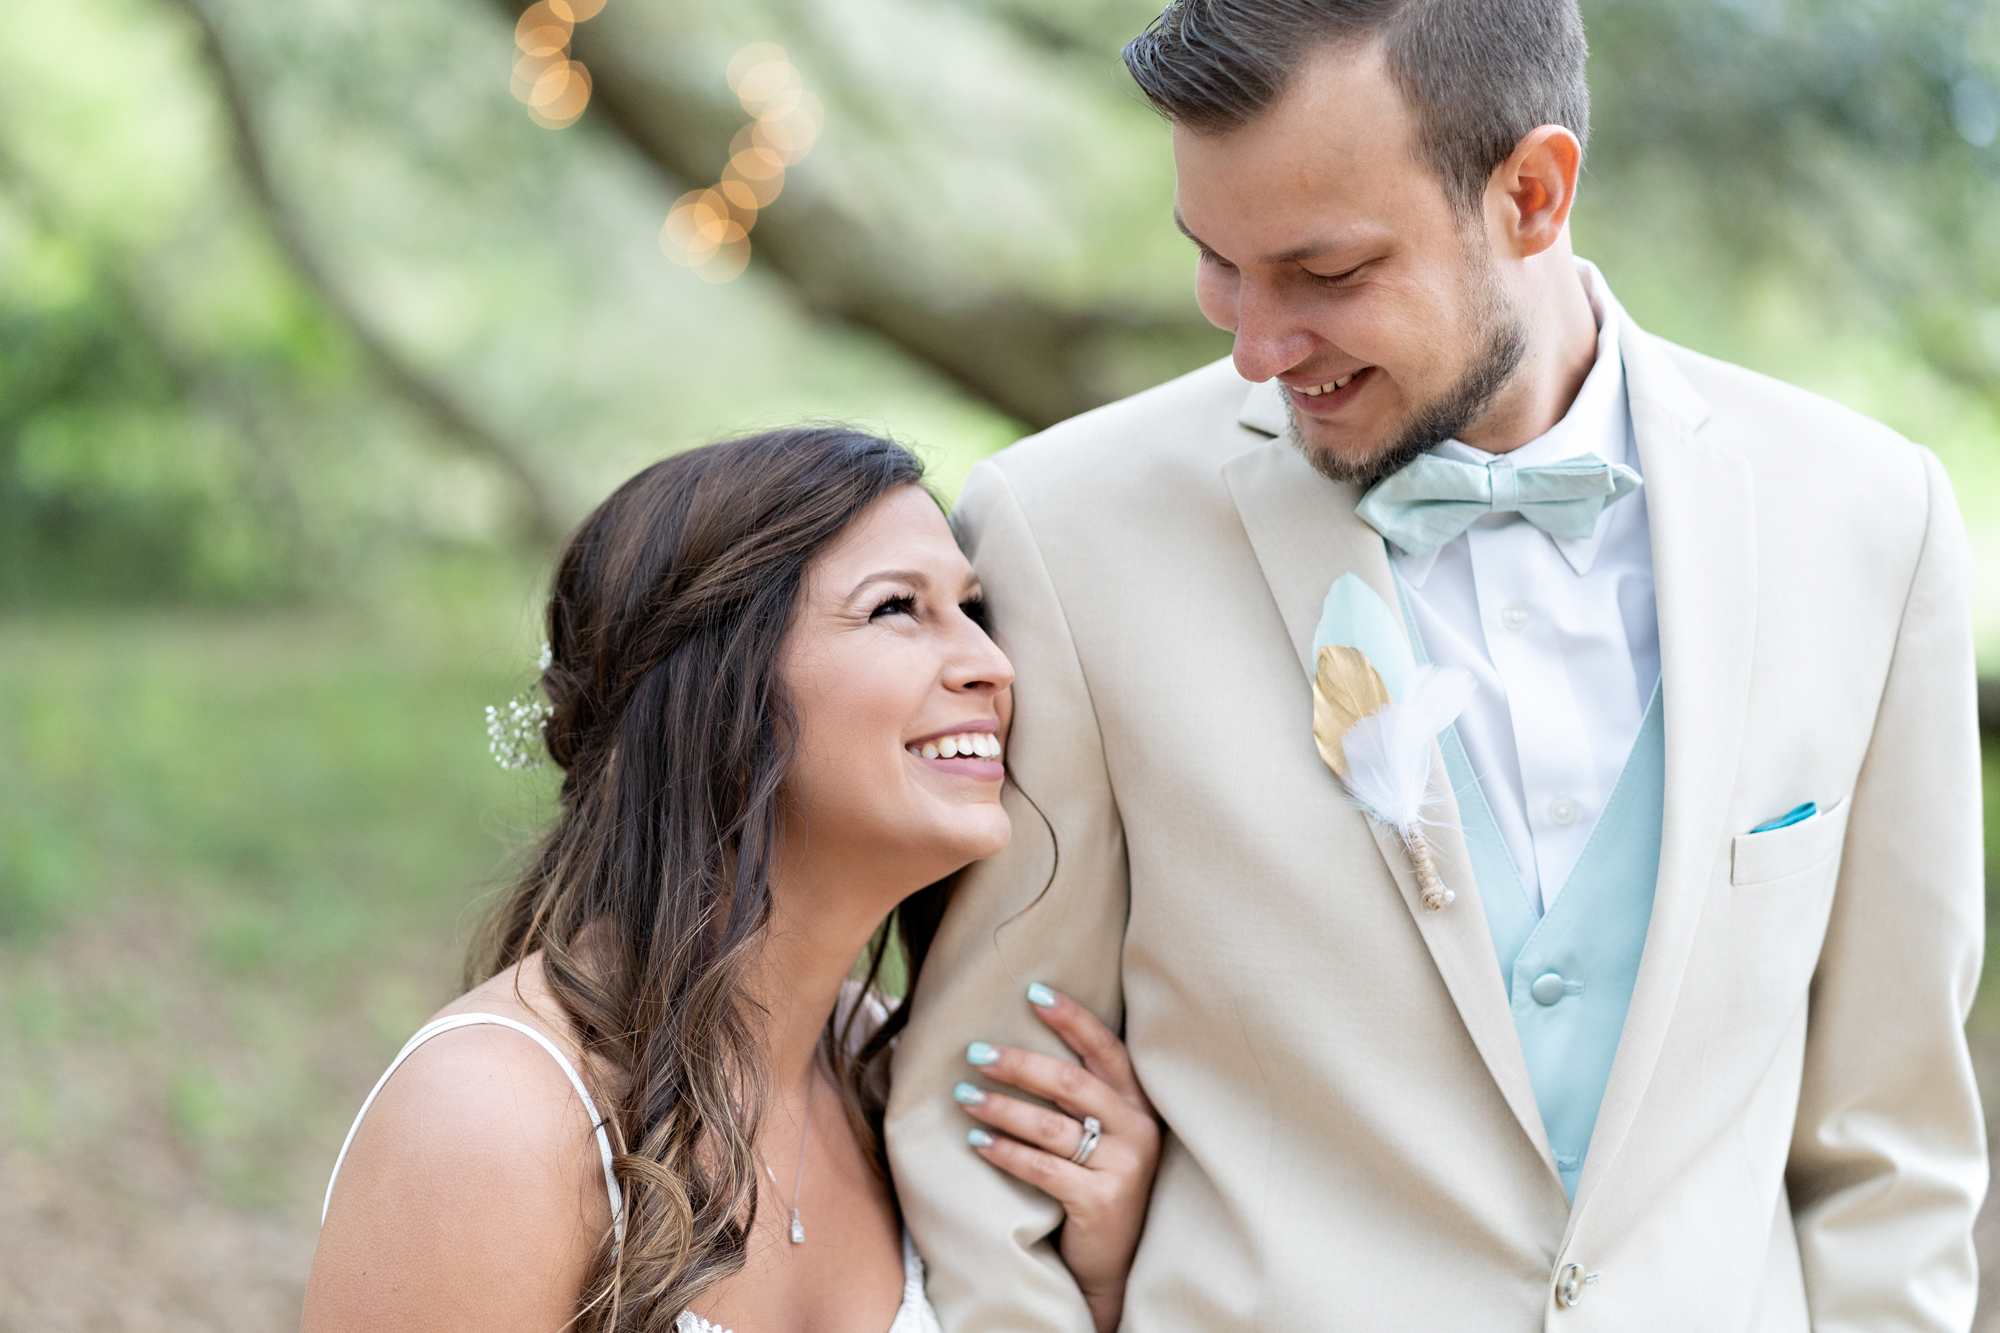 Fairhope-Alabama-Wedding-Photographers-Nick-Drollette-Photography-142.jpg